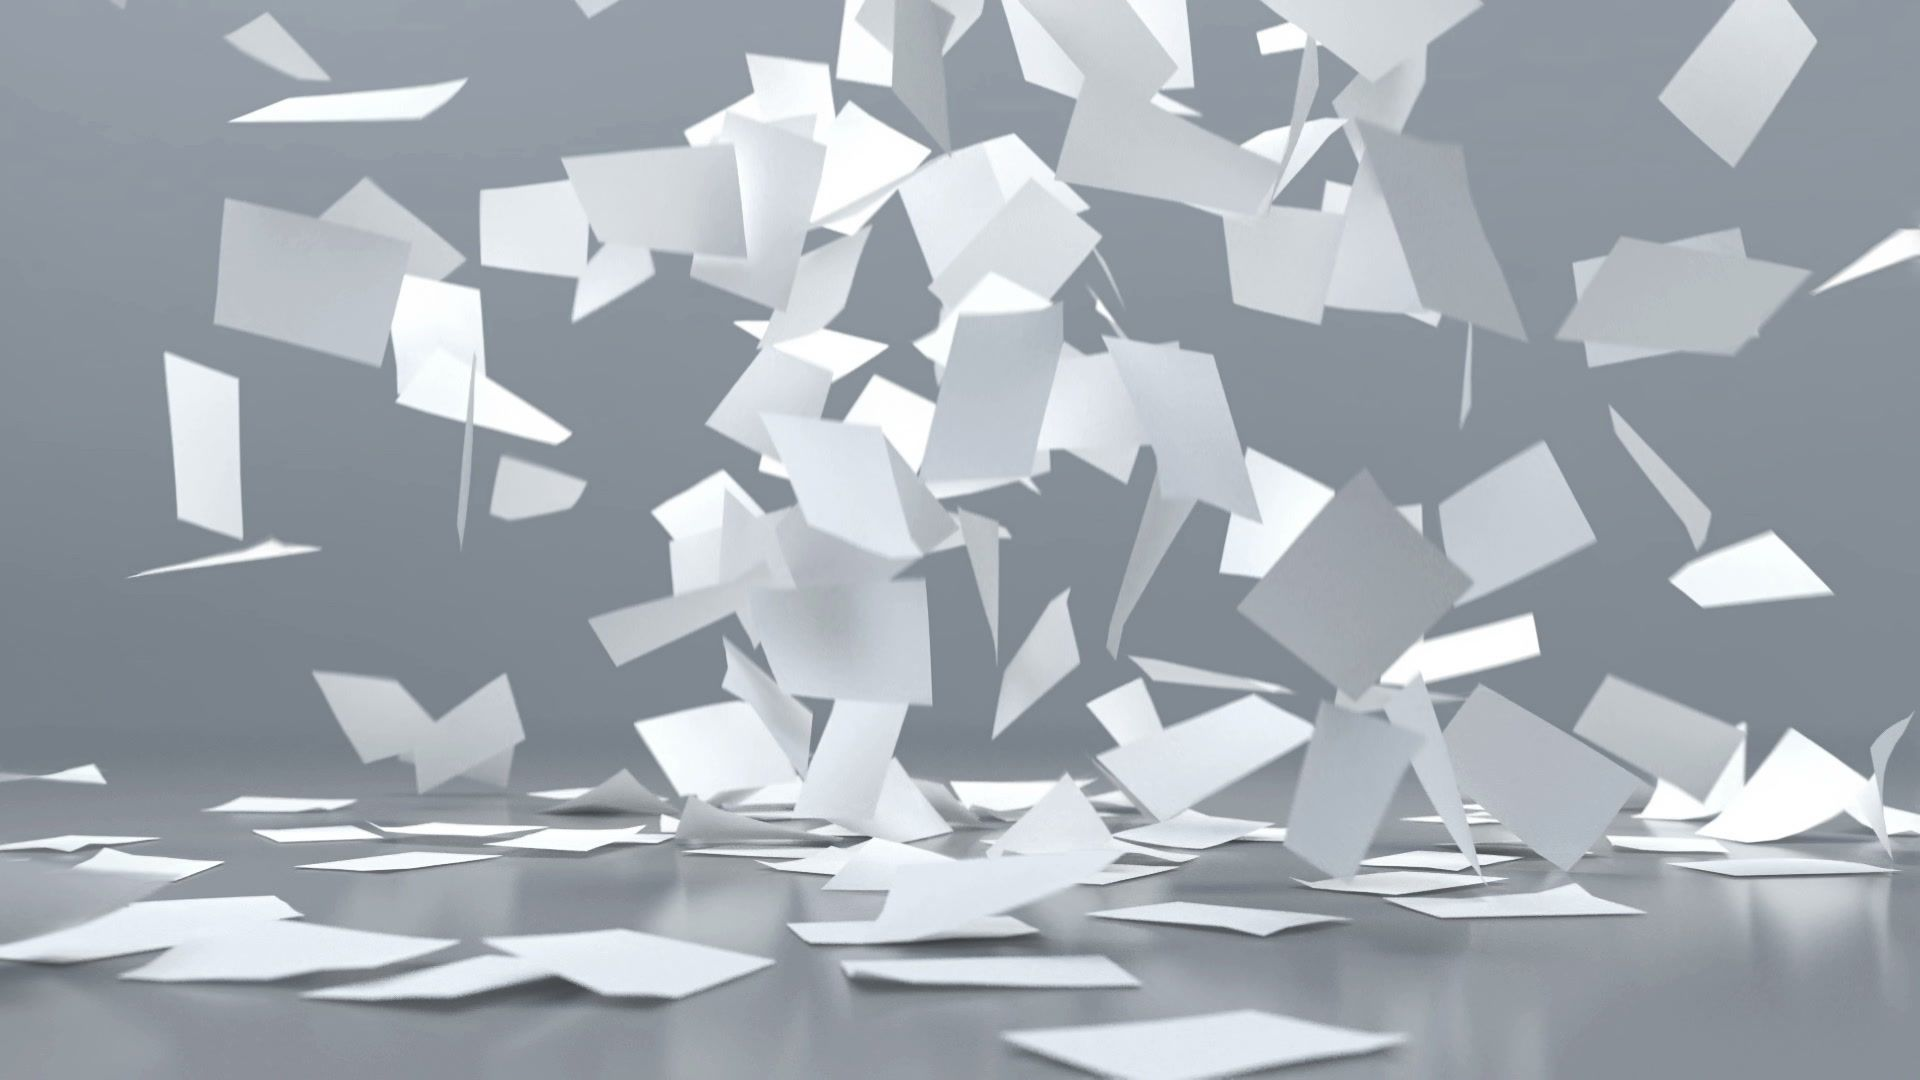 Explosion Of Paper Sheets Stock Footage Paper Explosion Sheets Footage Household Paper Products Document Shredding Board Game Design